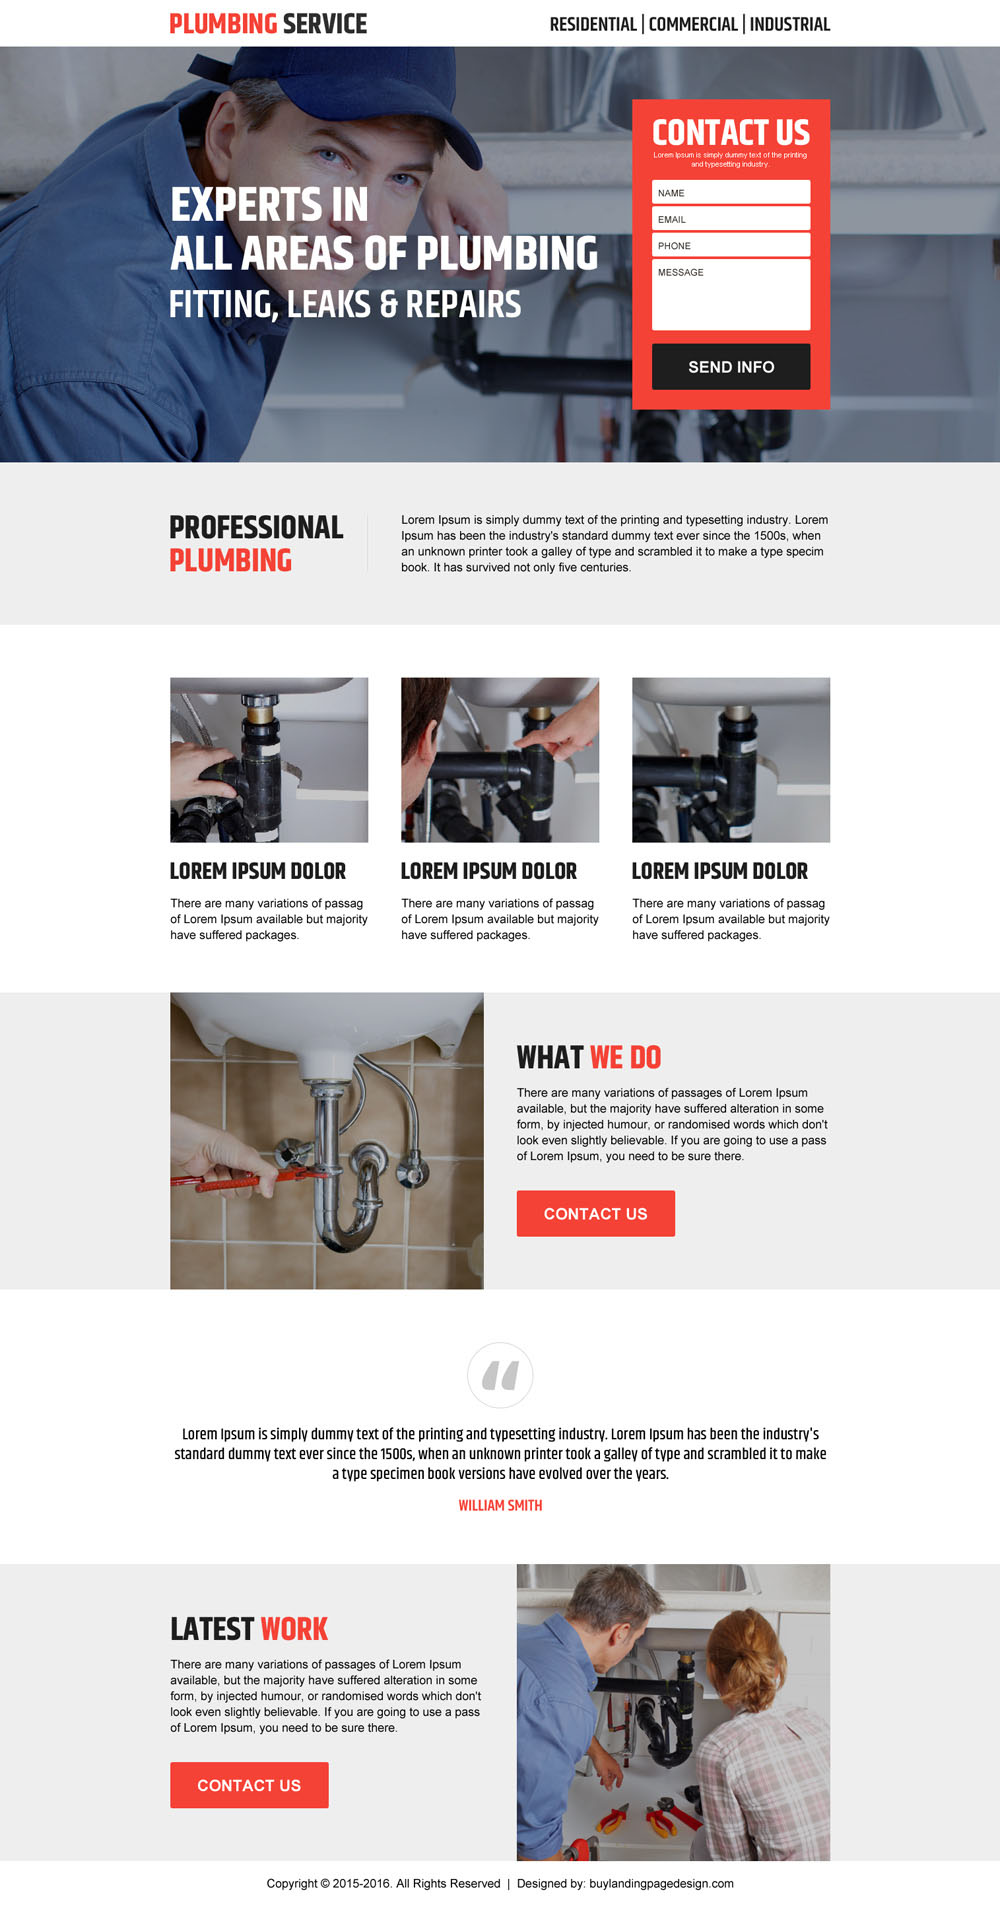 plumbing-service-lead-generation-landing-page-design-template-001